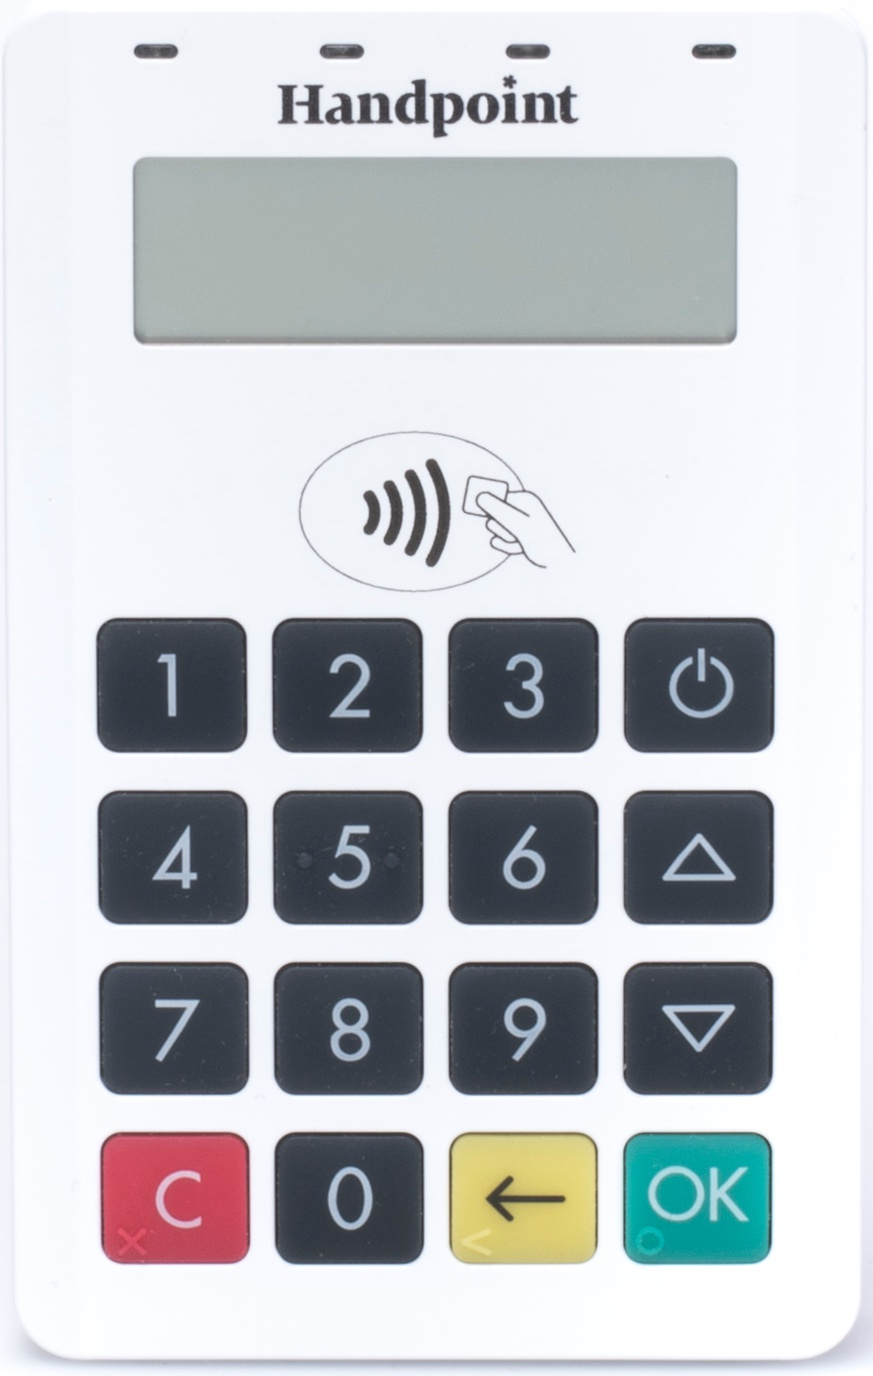 HiLite mobile EMV Chip & PIN terminal